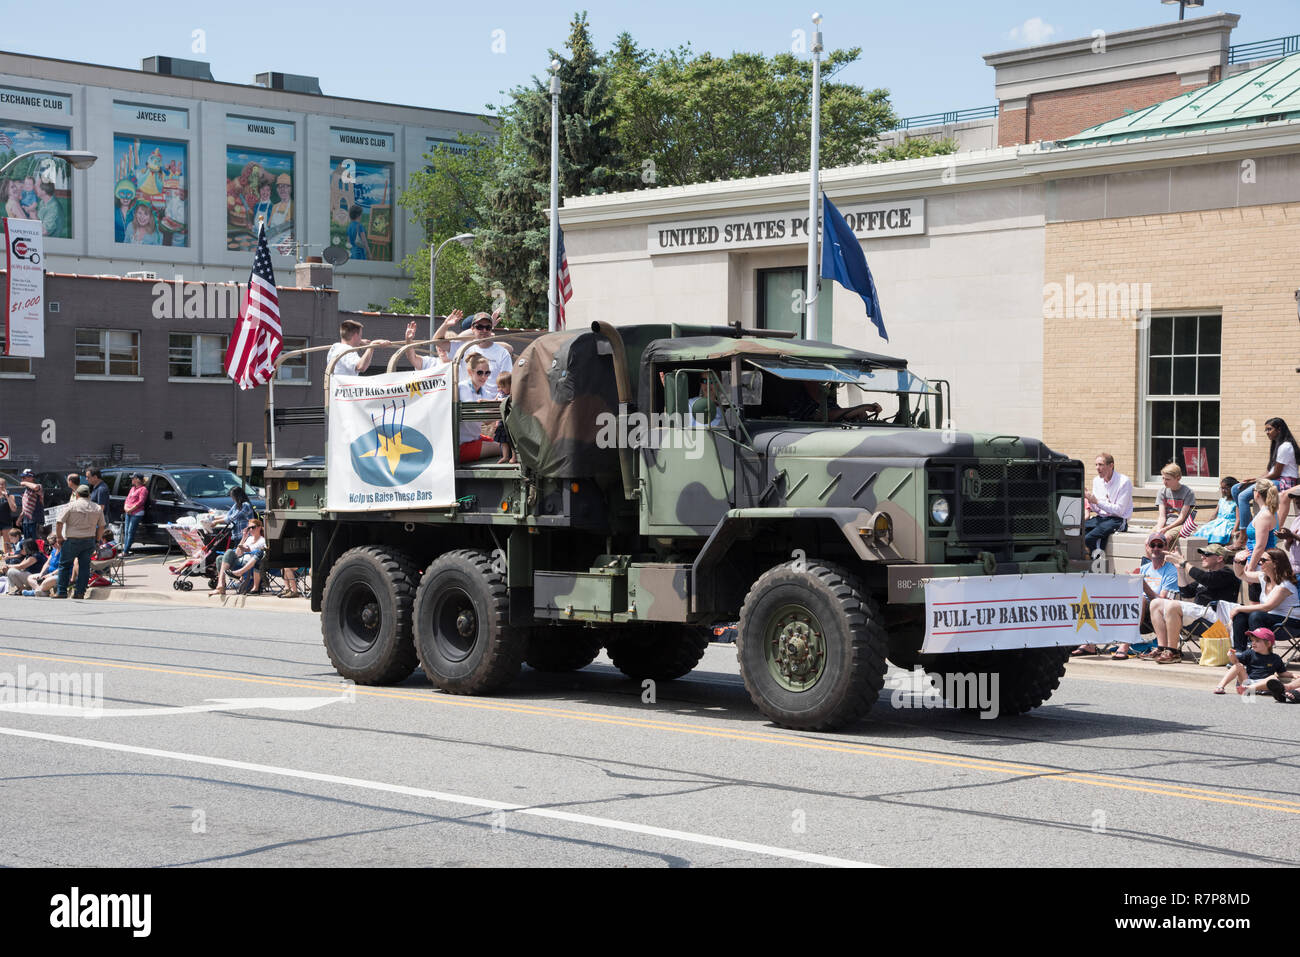 Naperville, Illinois, United States-May 29,2017: Memorial Day Parade with Military Vehicle and spectators in downtown Naperville, Illinois - Stock Image